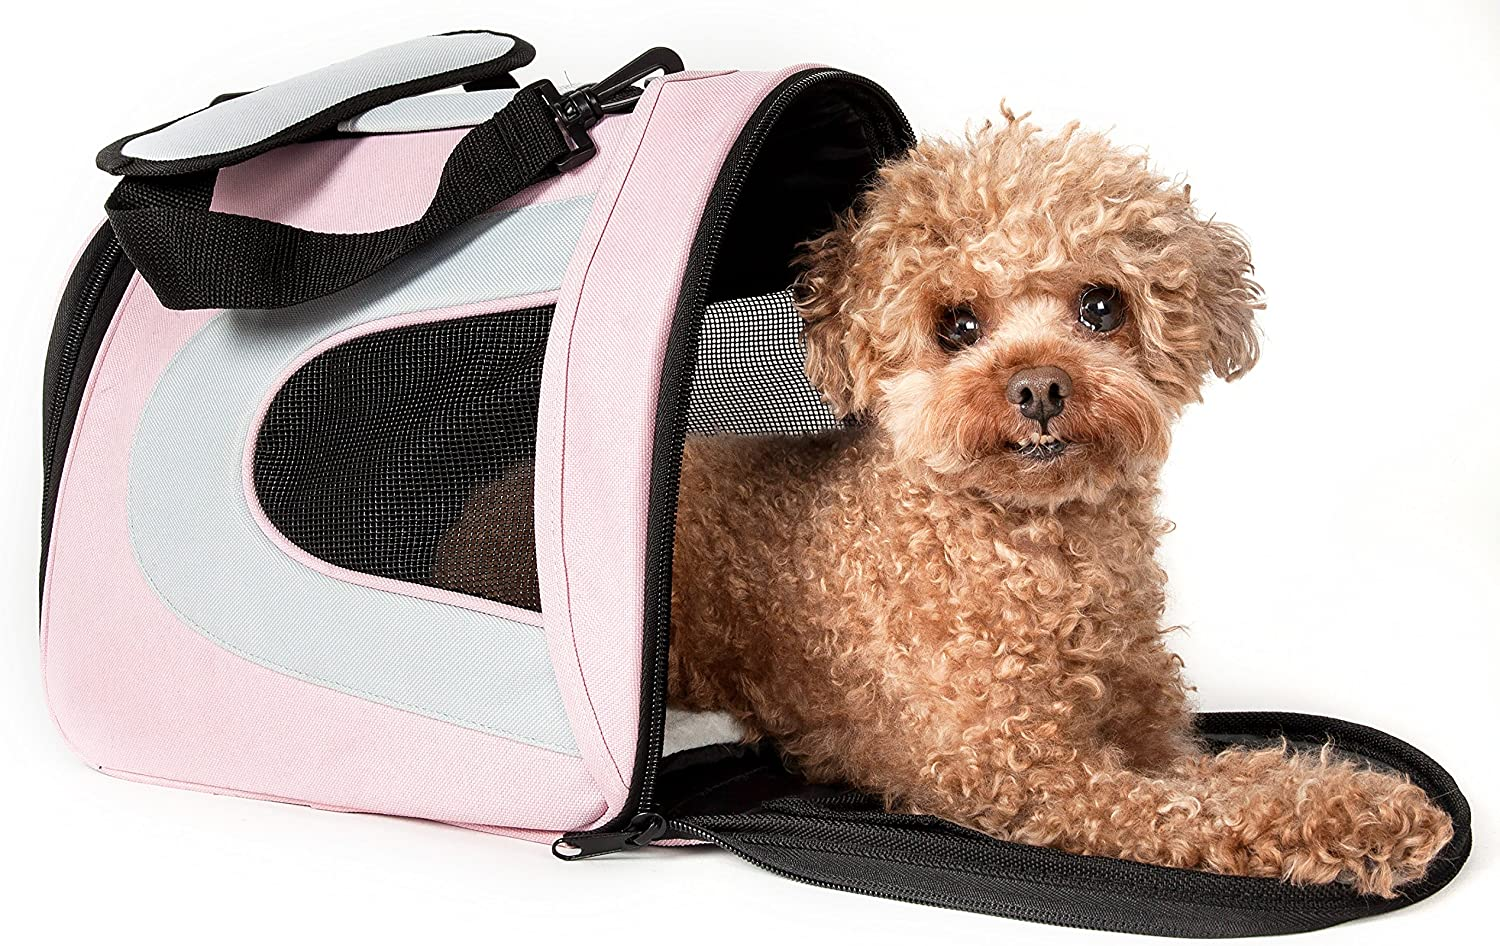 PET LIFE Airline Approved Collapsible Zippered Folding Sporty Mesh Travel Fashion Pet Dog Carrier Crate, Large, Pink & Cream